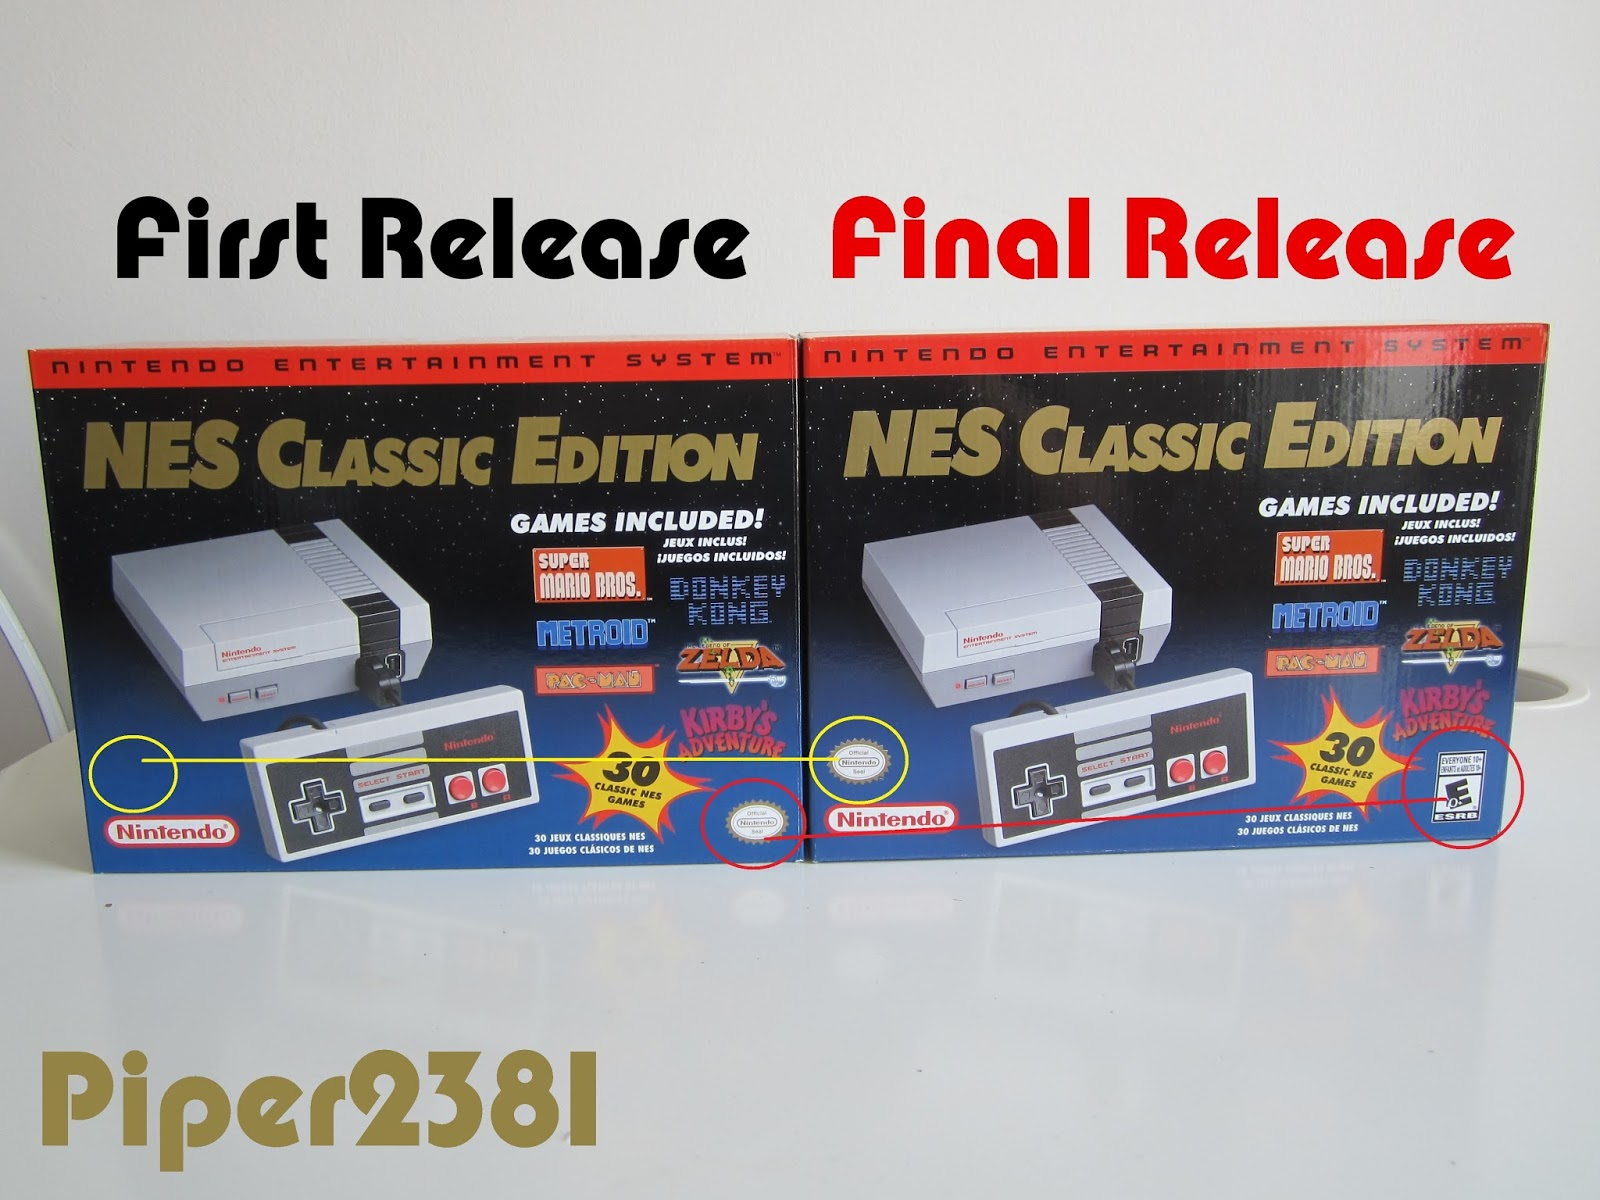 Piper2381 Nes Classic Edition Box Variation